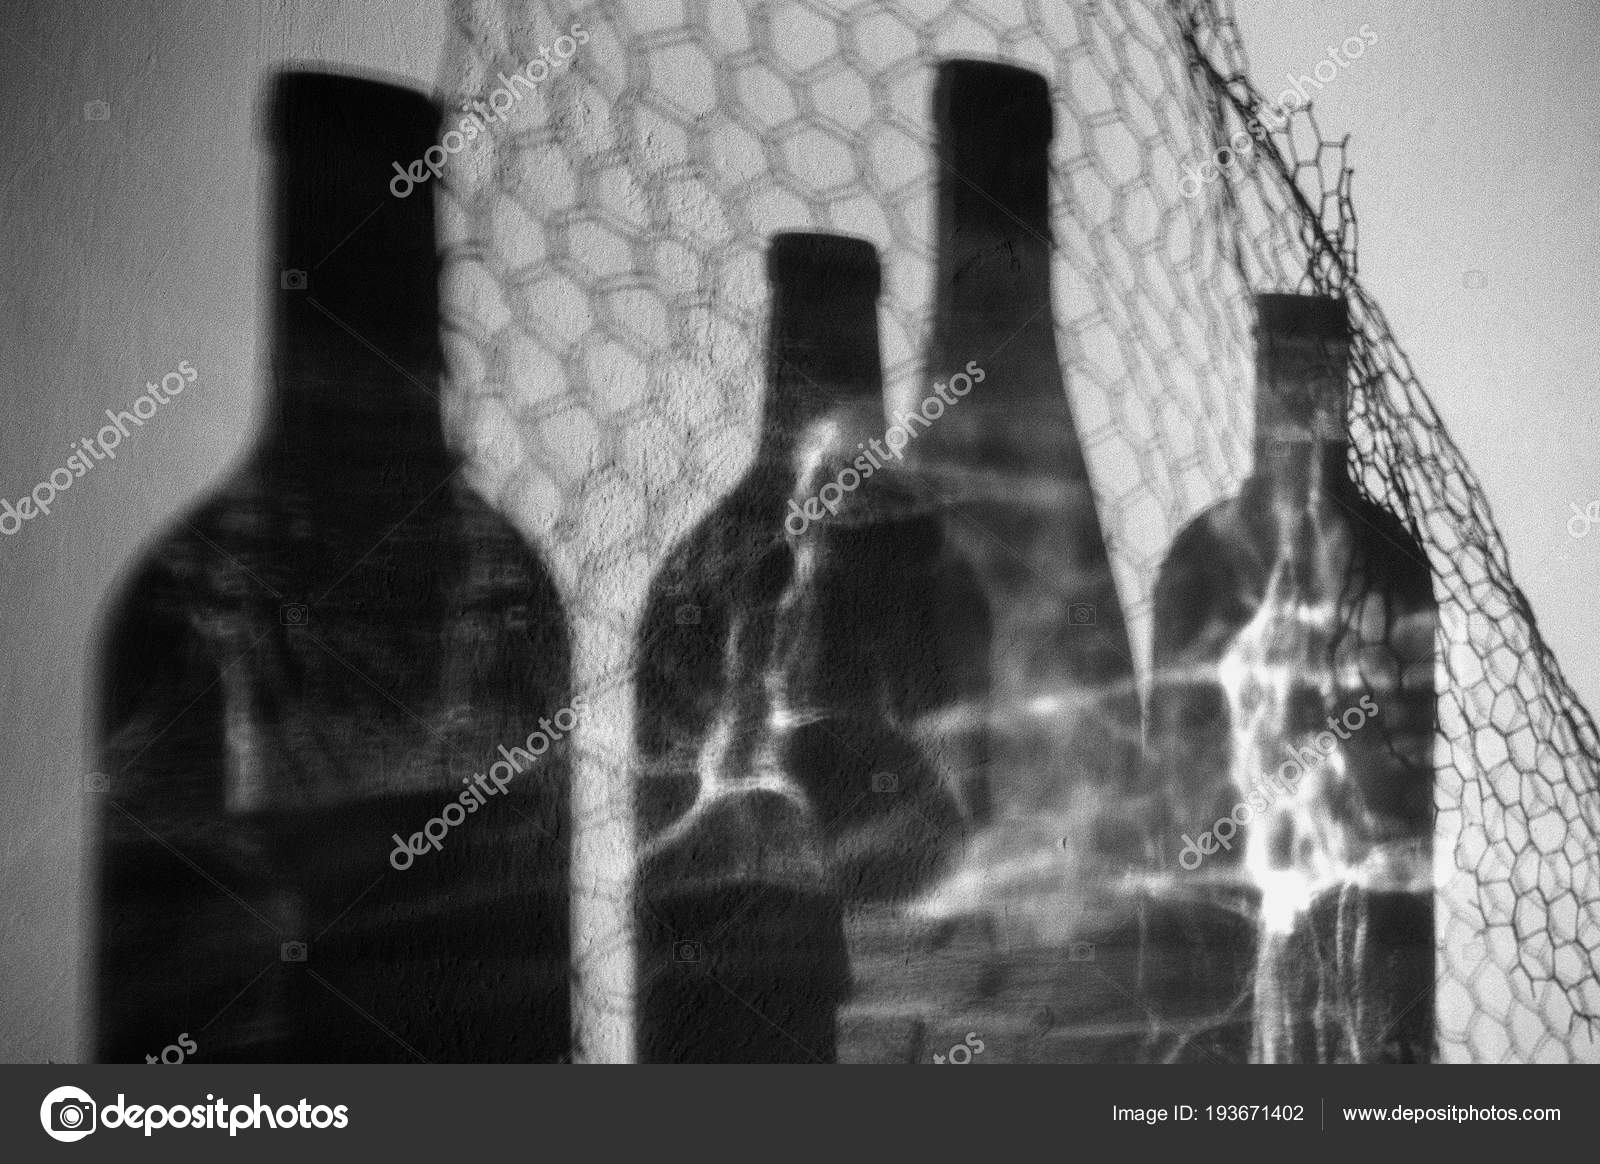 Black white artistic photography empty glass wine bottles shadows